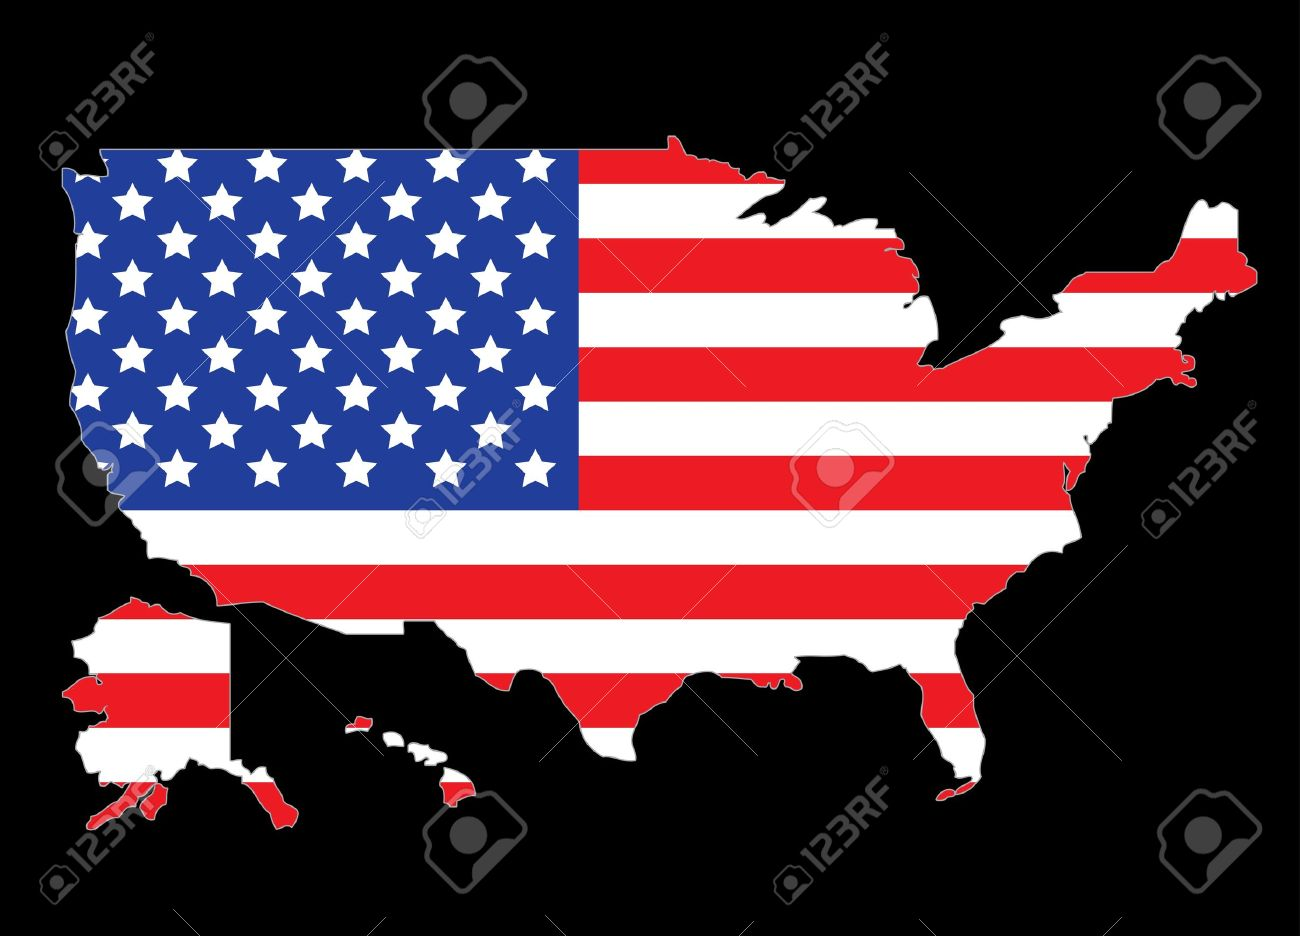 United states outline clipart red clipart transparent library USA Map Outline With United States Flag Vector Illustration ... clipart transparent library